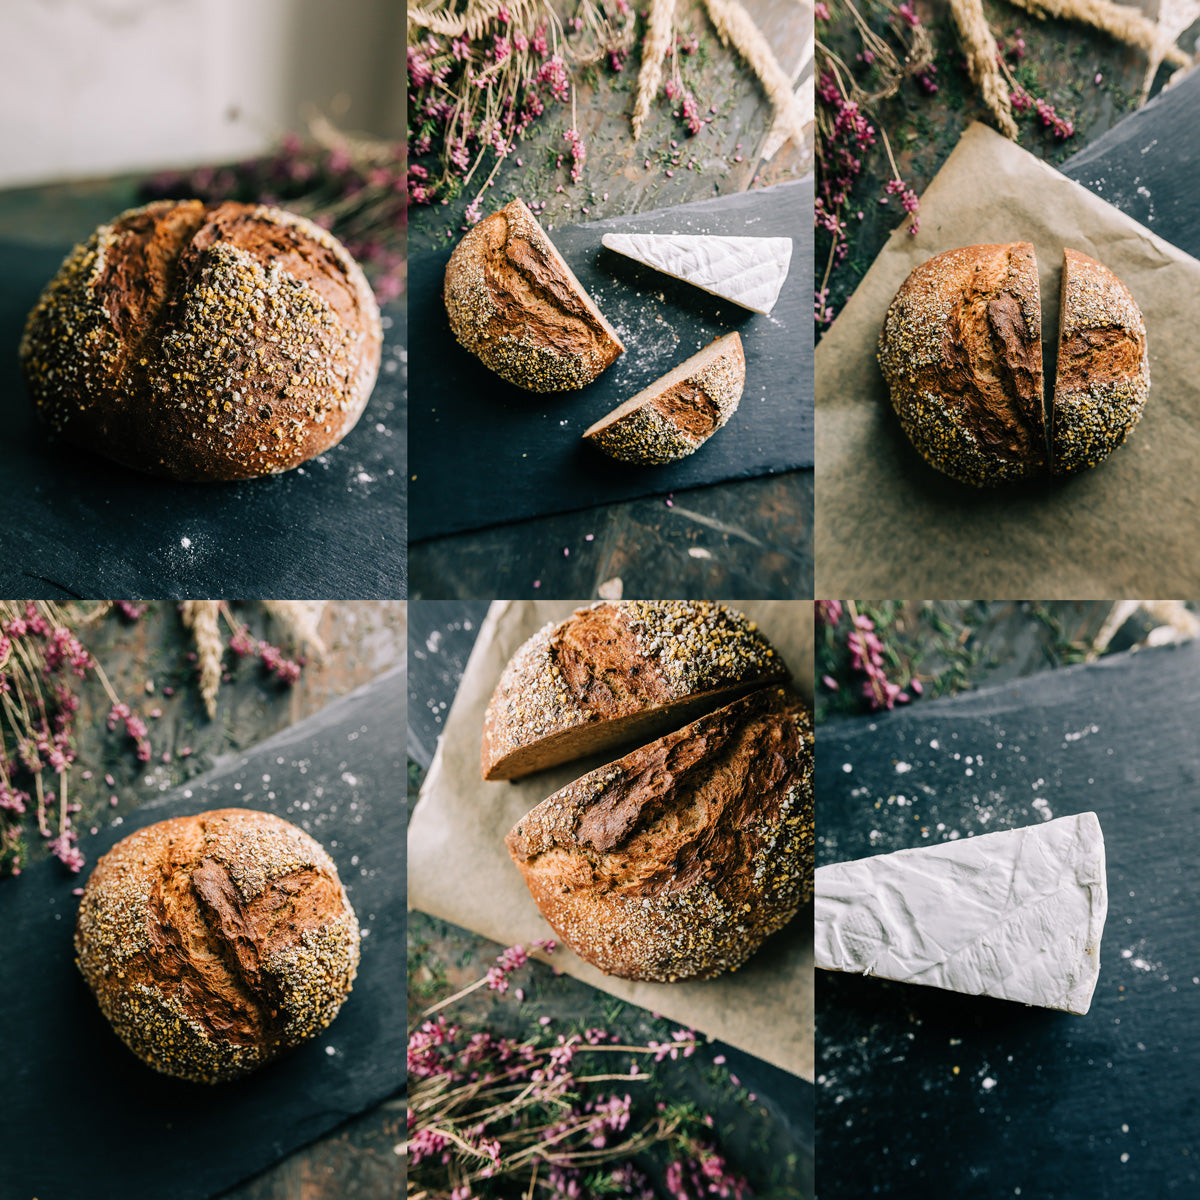 Bread Food Photography by Christina Quesenberry